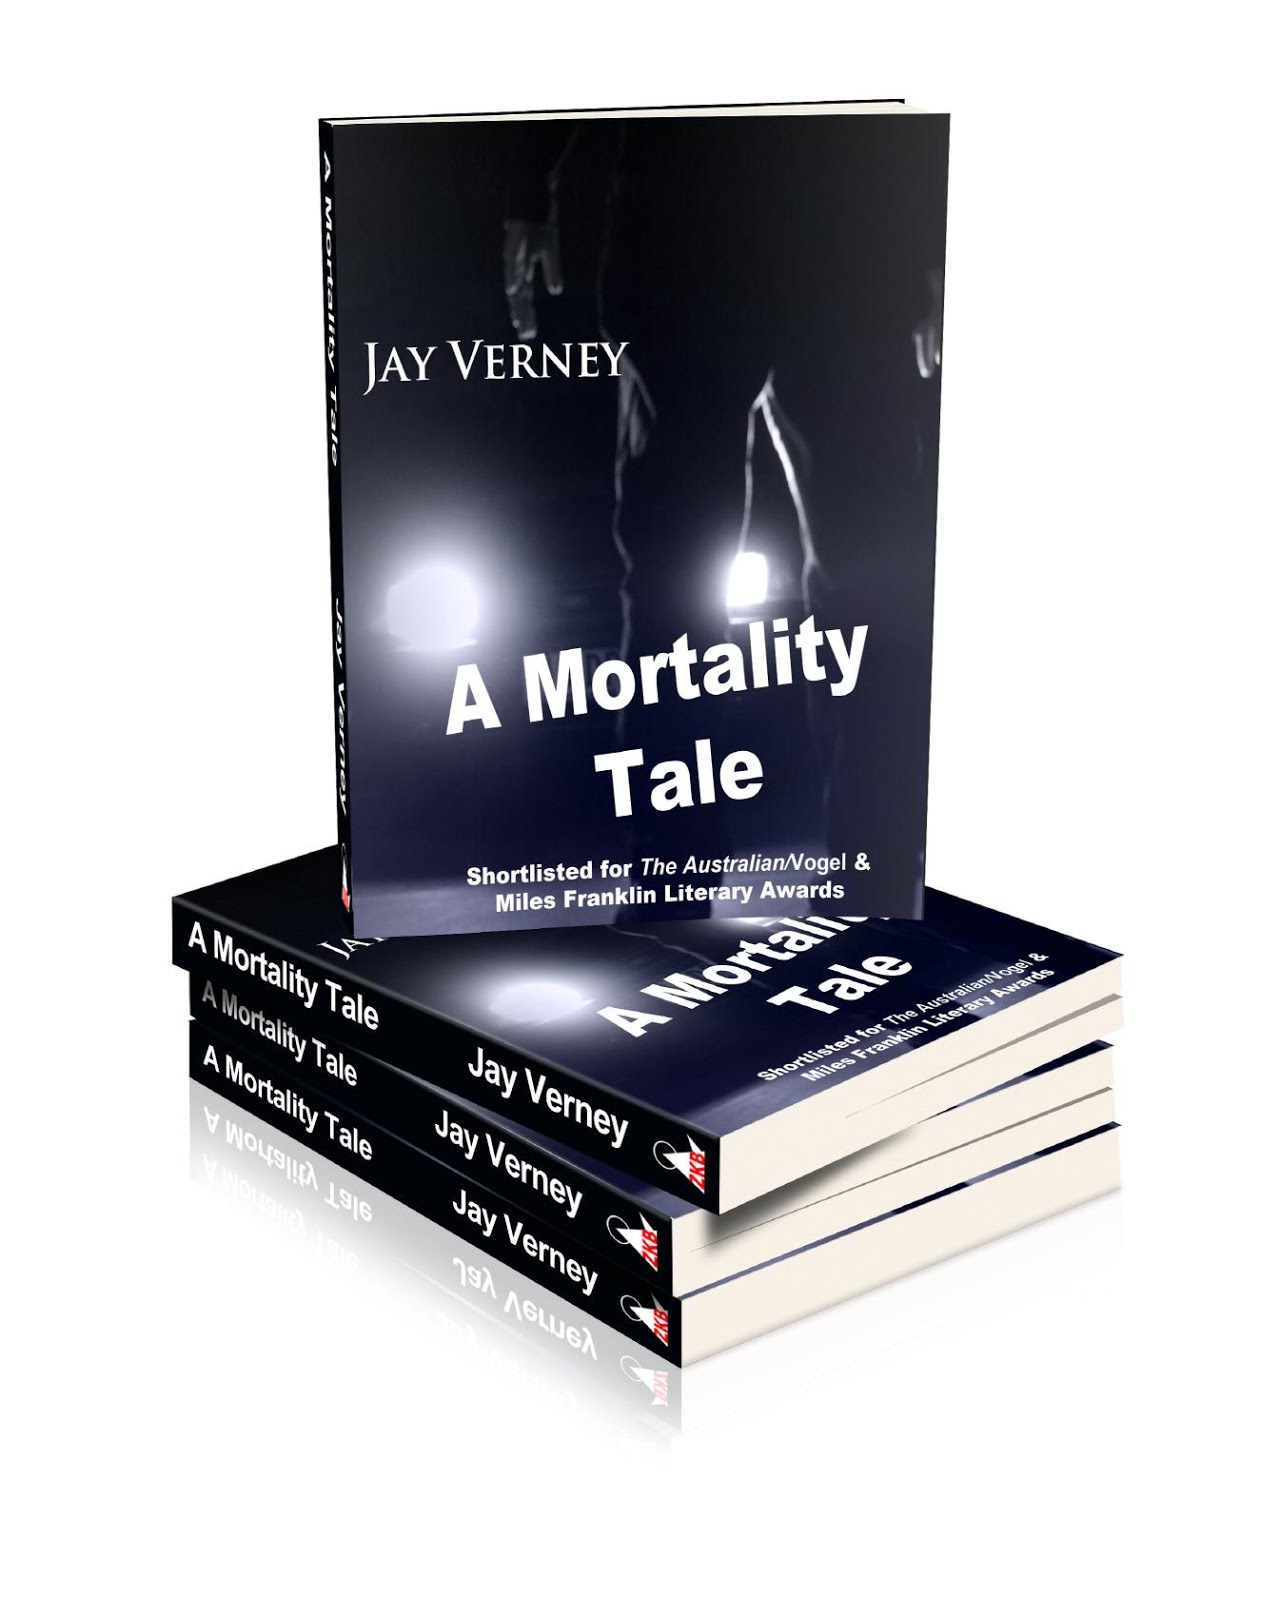 A Mortality Tale - My 1st novel